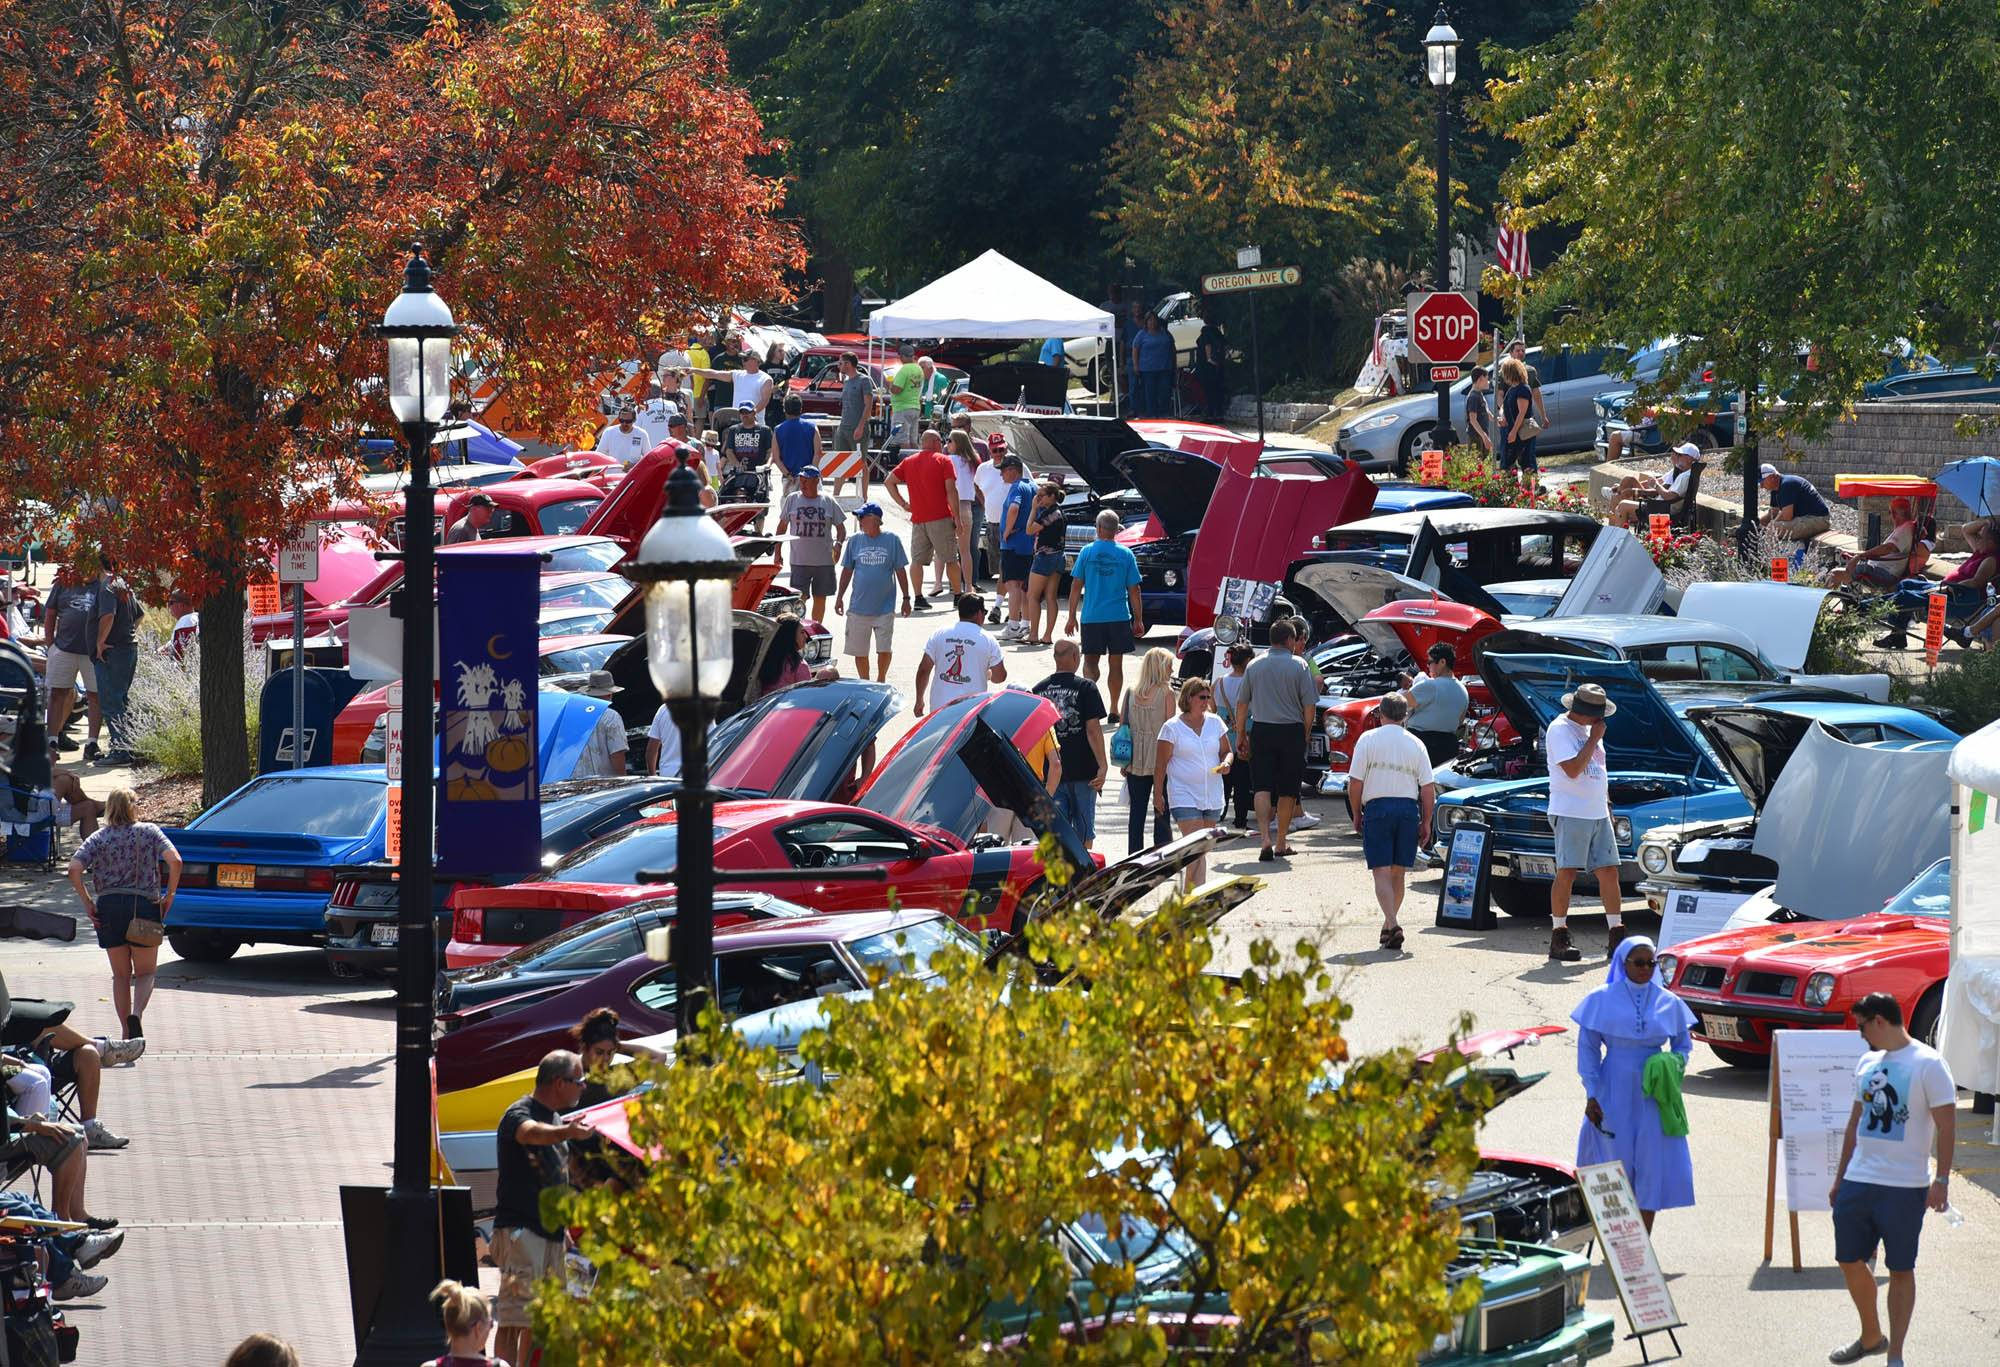 South Second Street in West Dundee is filled with classic cars at last year's Heritage Fest, which took place in both East and West Dundee. This year, East Dundee officials have announced they will not participate in the festival.